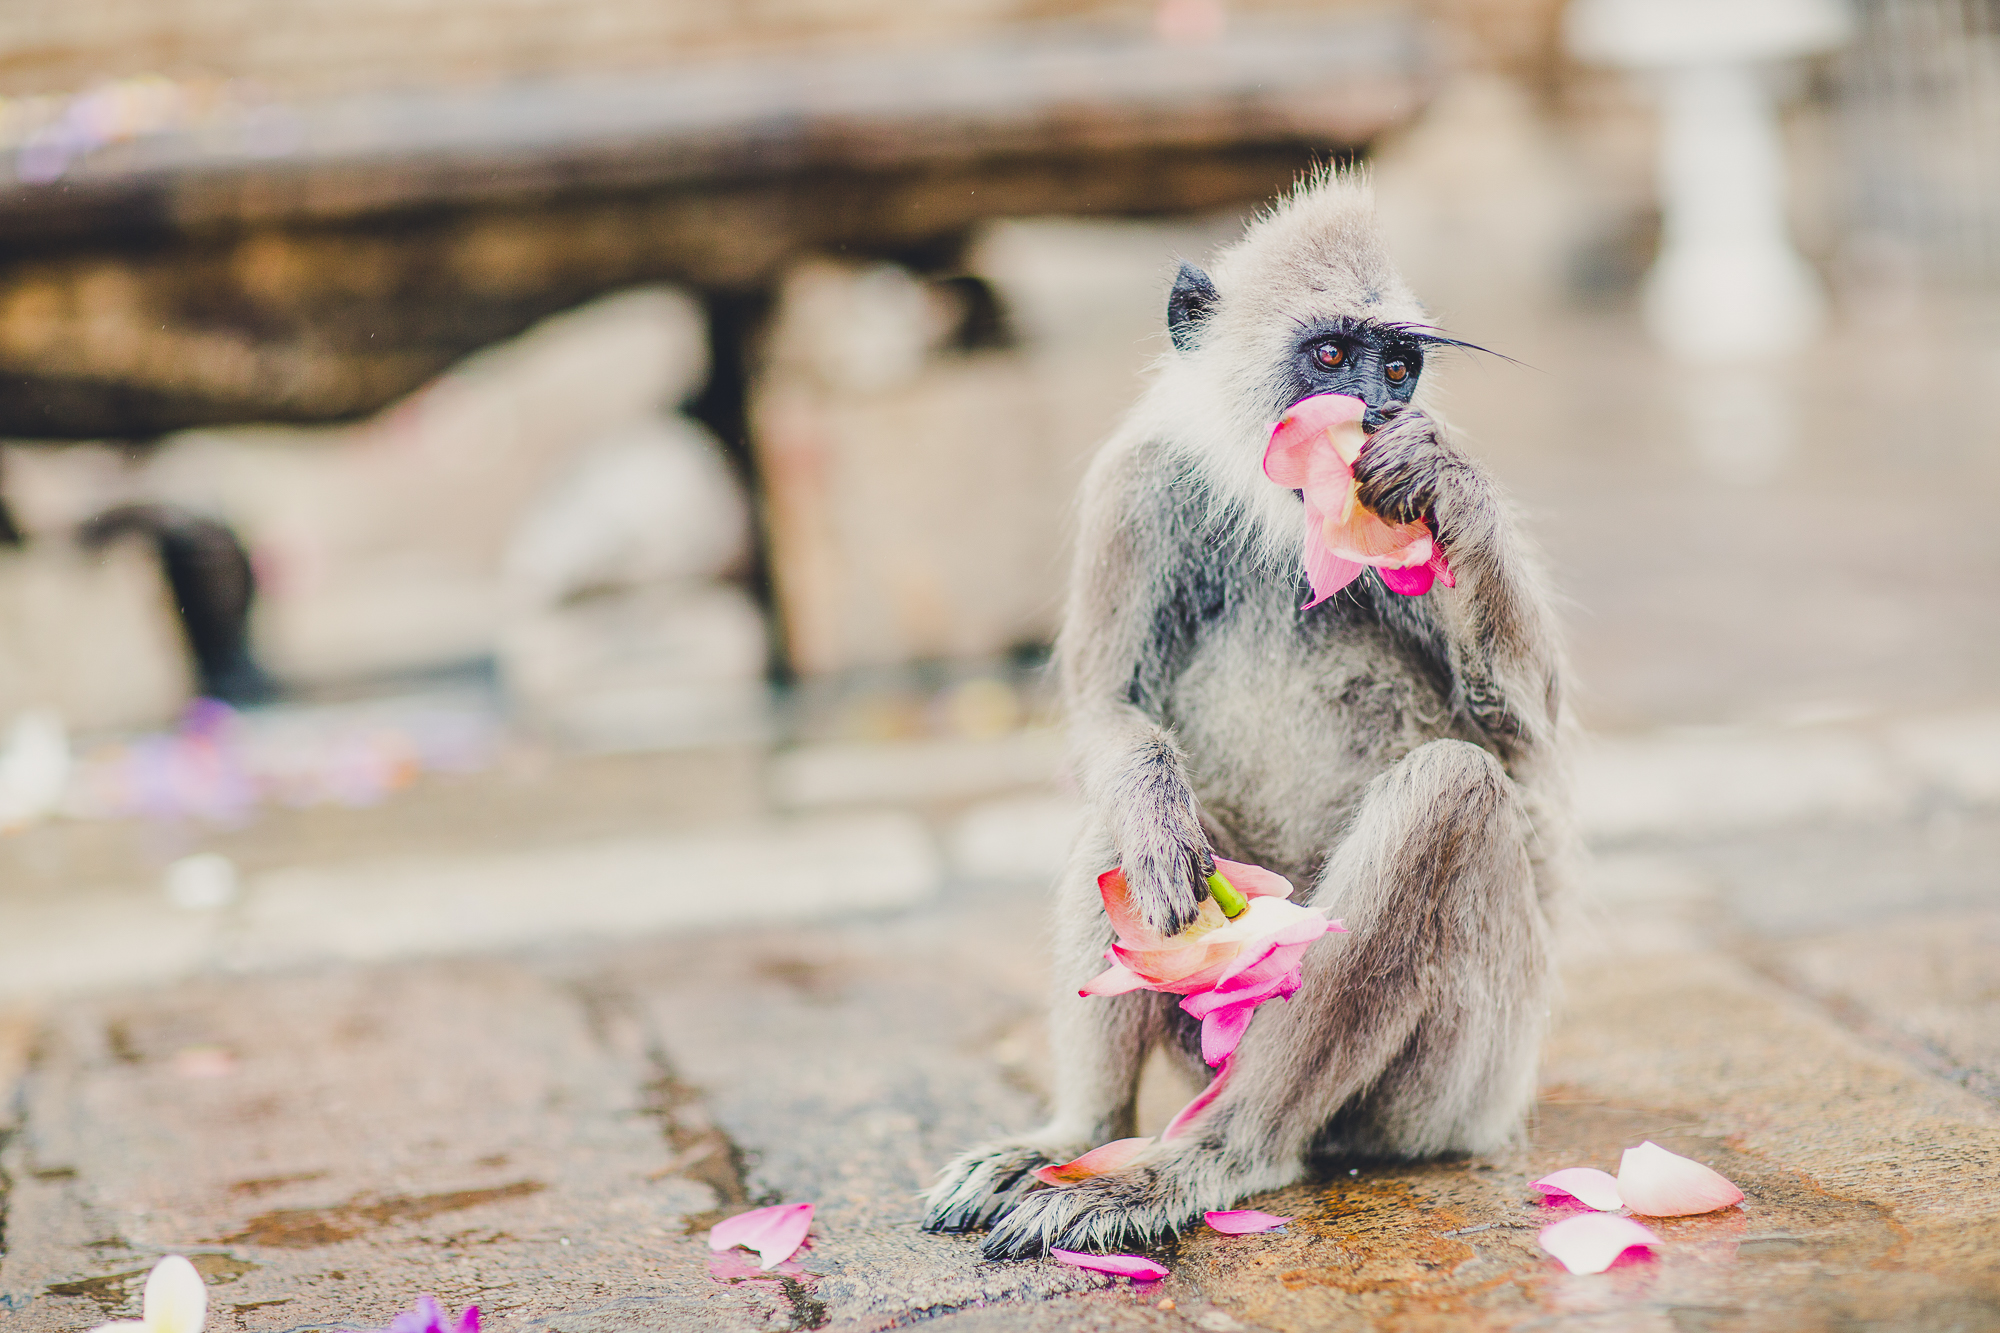 Monkey eating Petals